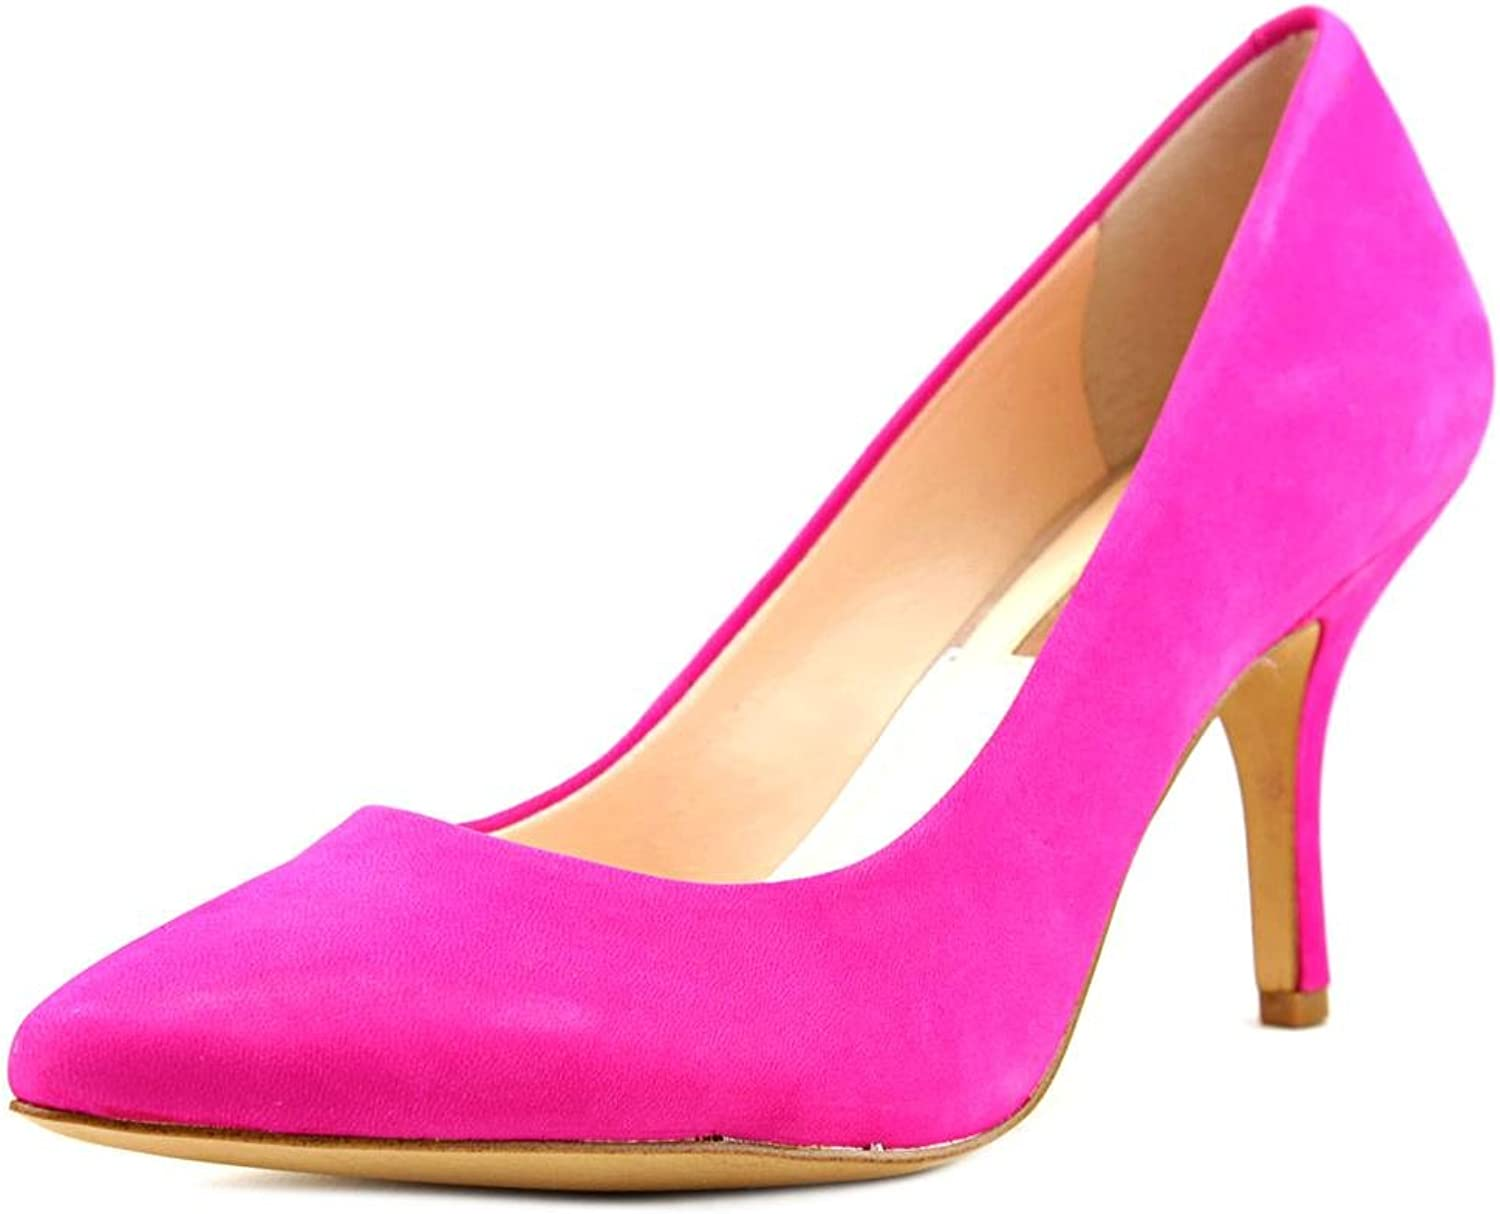 INC International Concepts Womens Zitah Pointed Toe, DEEP Fuchsia, Size 6.0